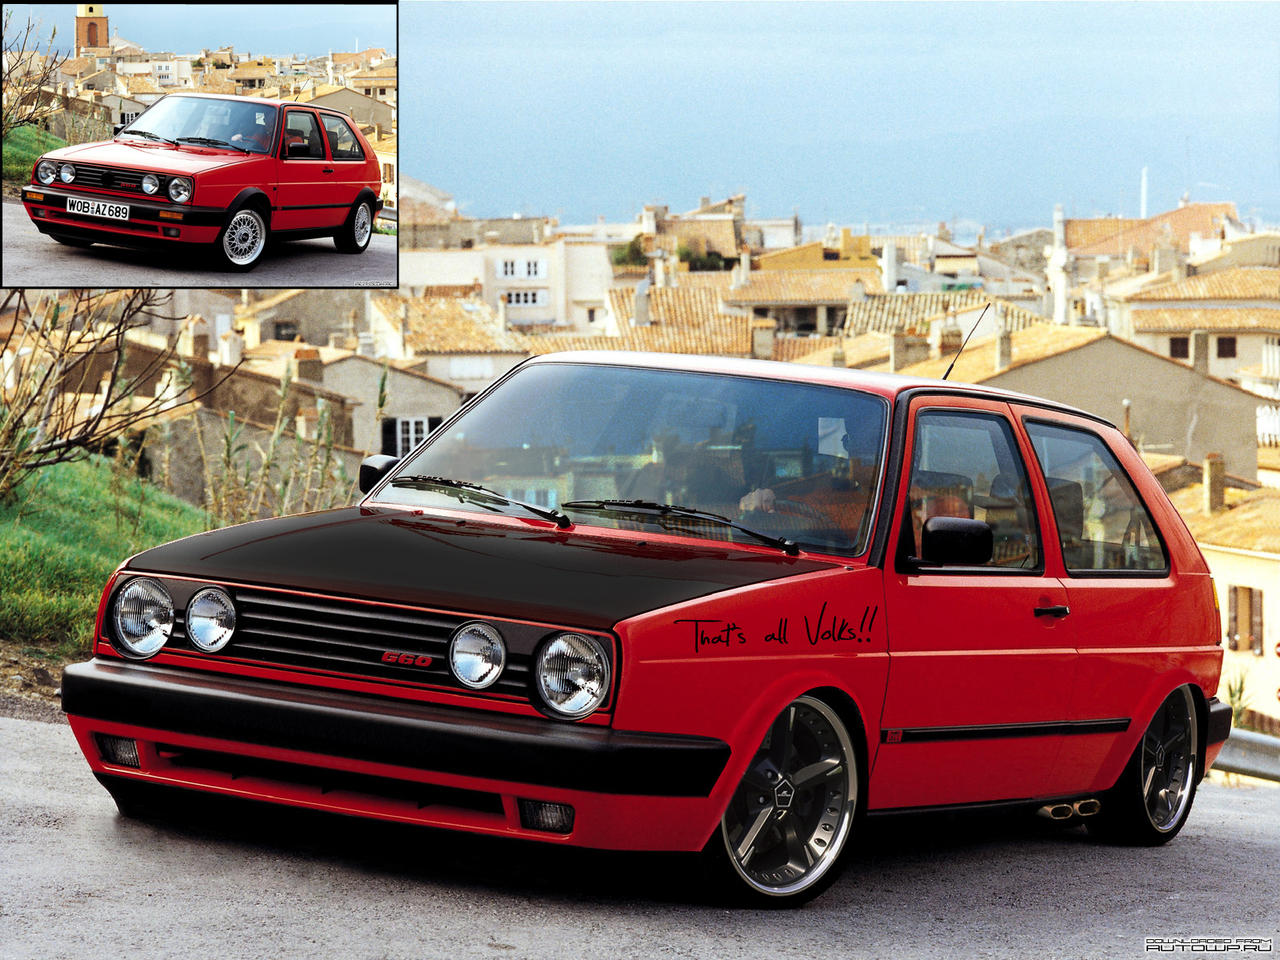 golf ii gti by mp160 on deviantart. Black Bedroom Furniture Sets. Home Design Ideas